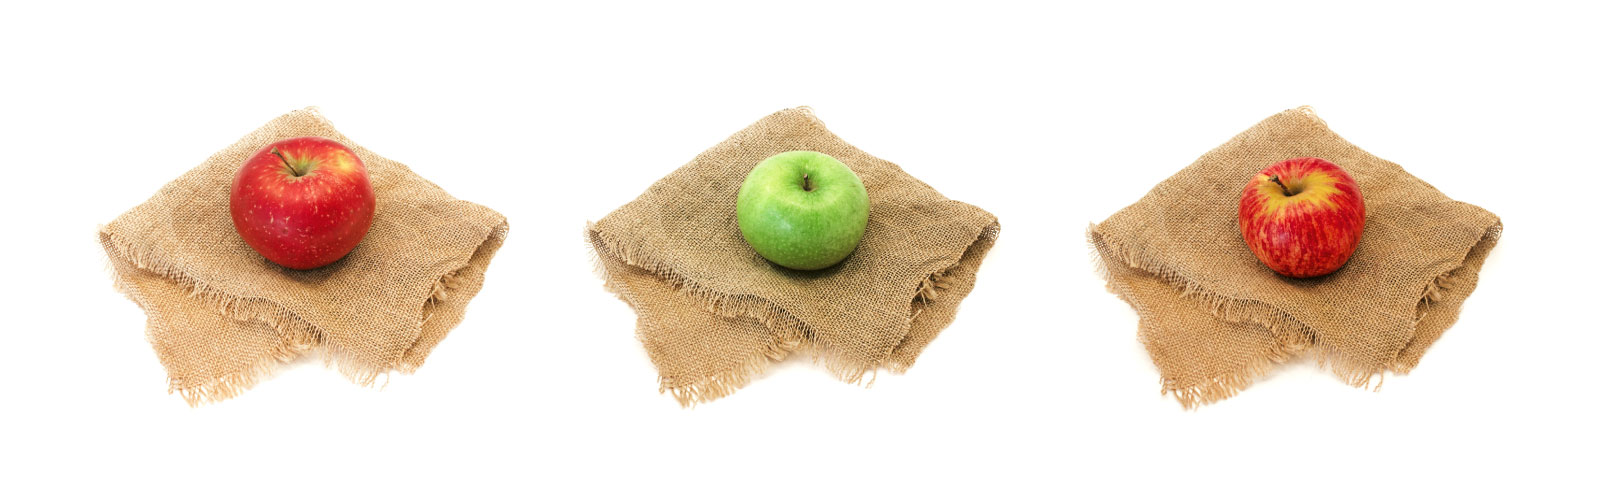 apples-on-mats-white-background